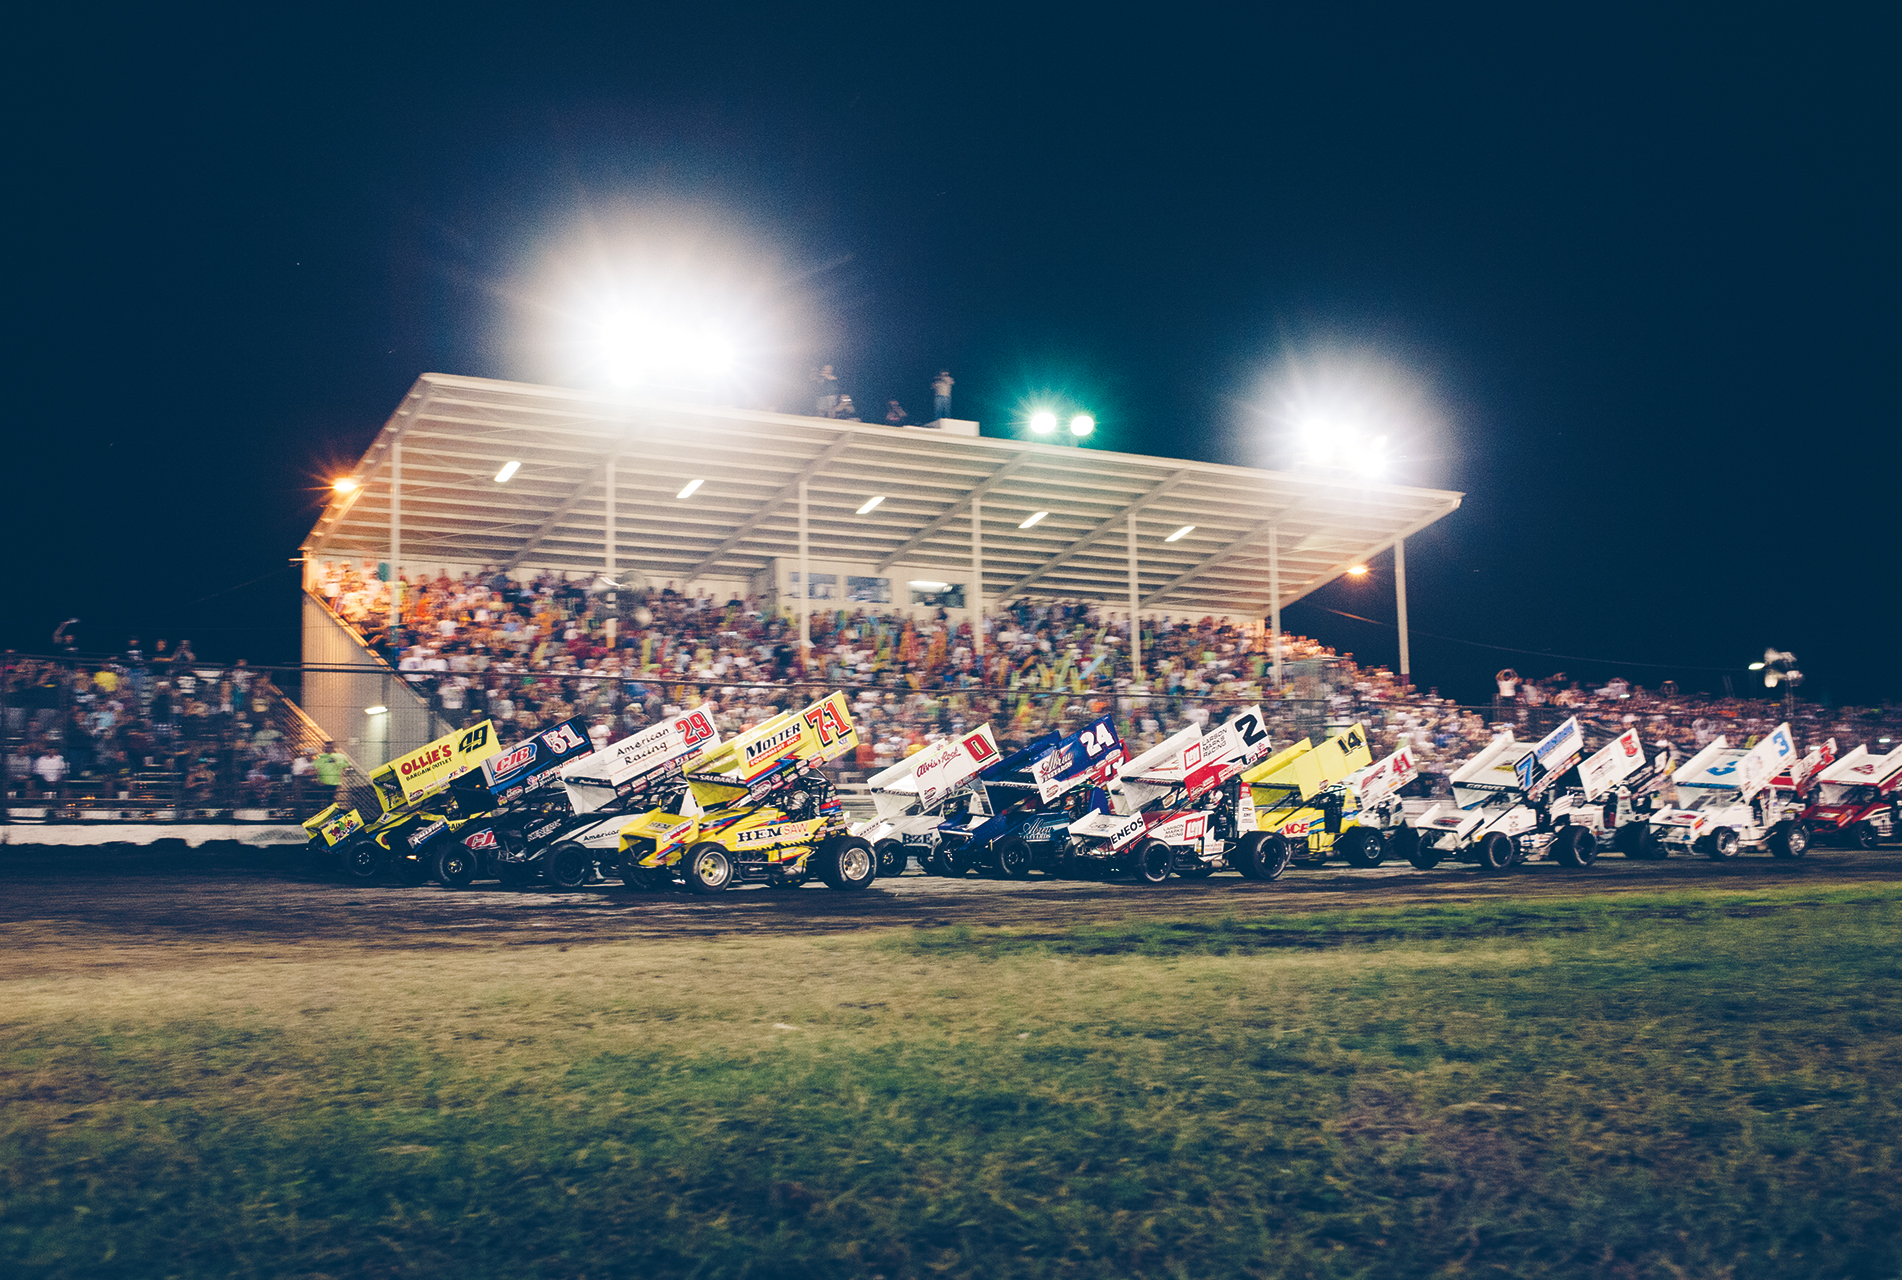 """410 winged sprint drivers """"salute the fans"""" before the start of the World of Outlaws/Gold Cup at Chico."""